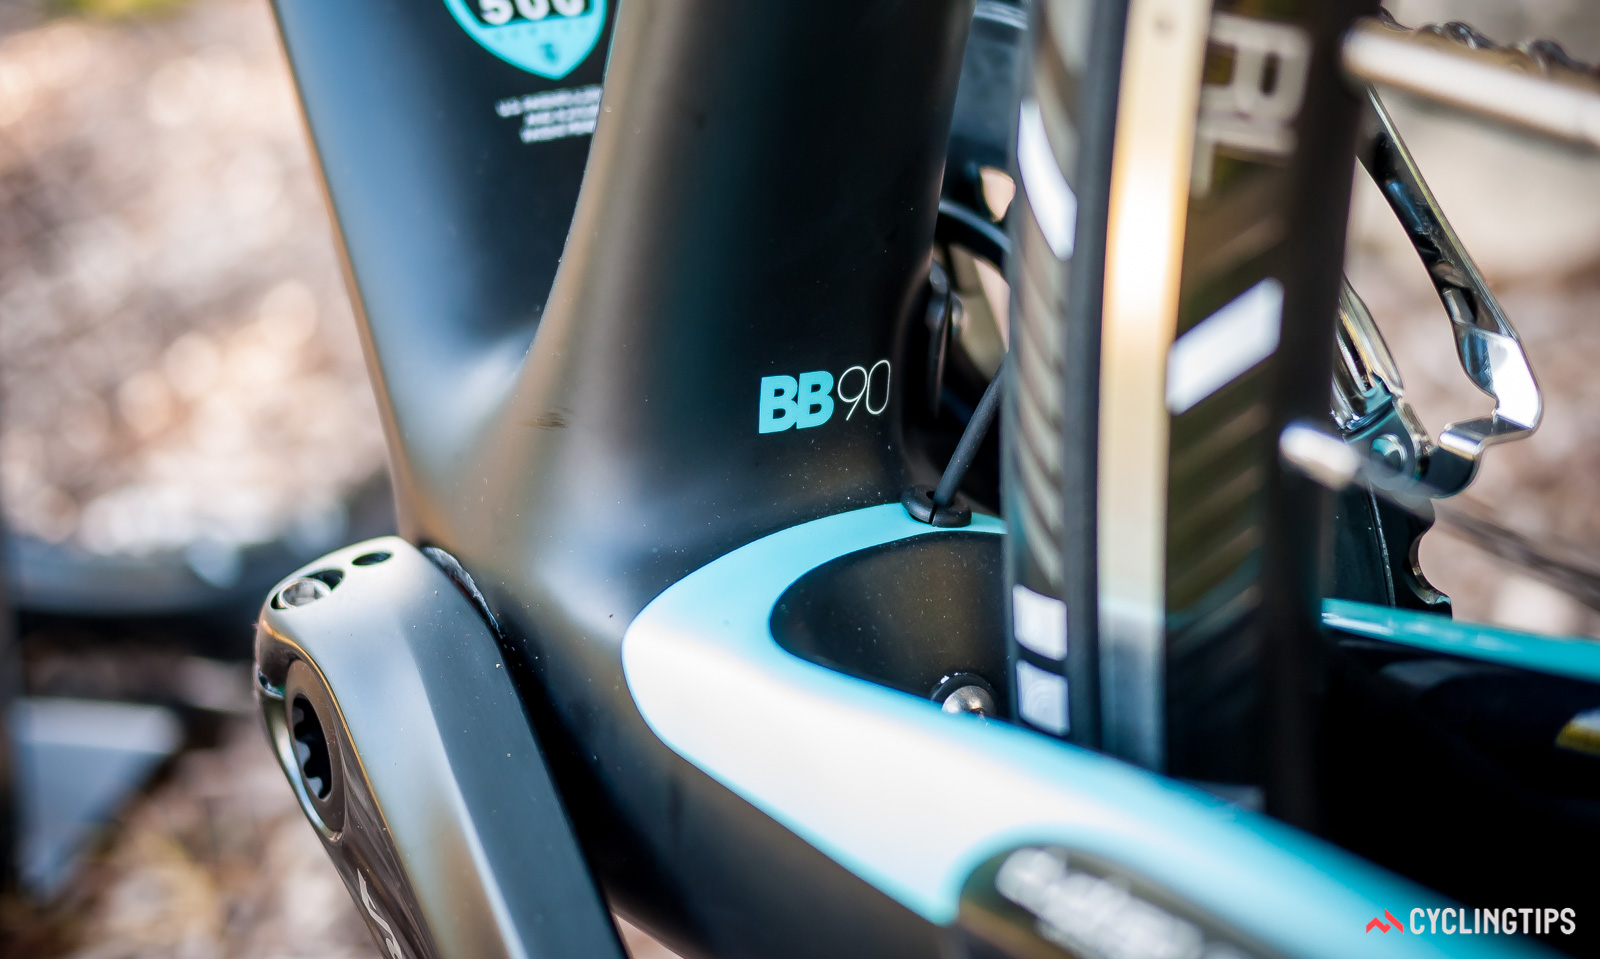 Trek's BB90 road bottom bracket is a proprietary design that is not used by any other brand